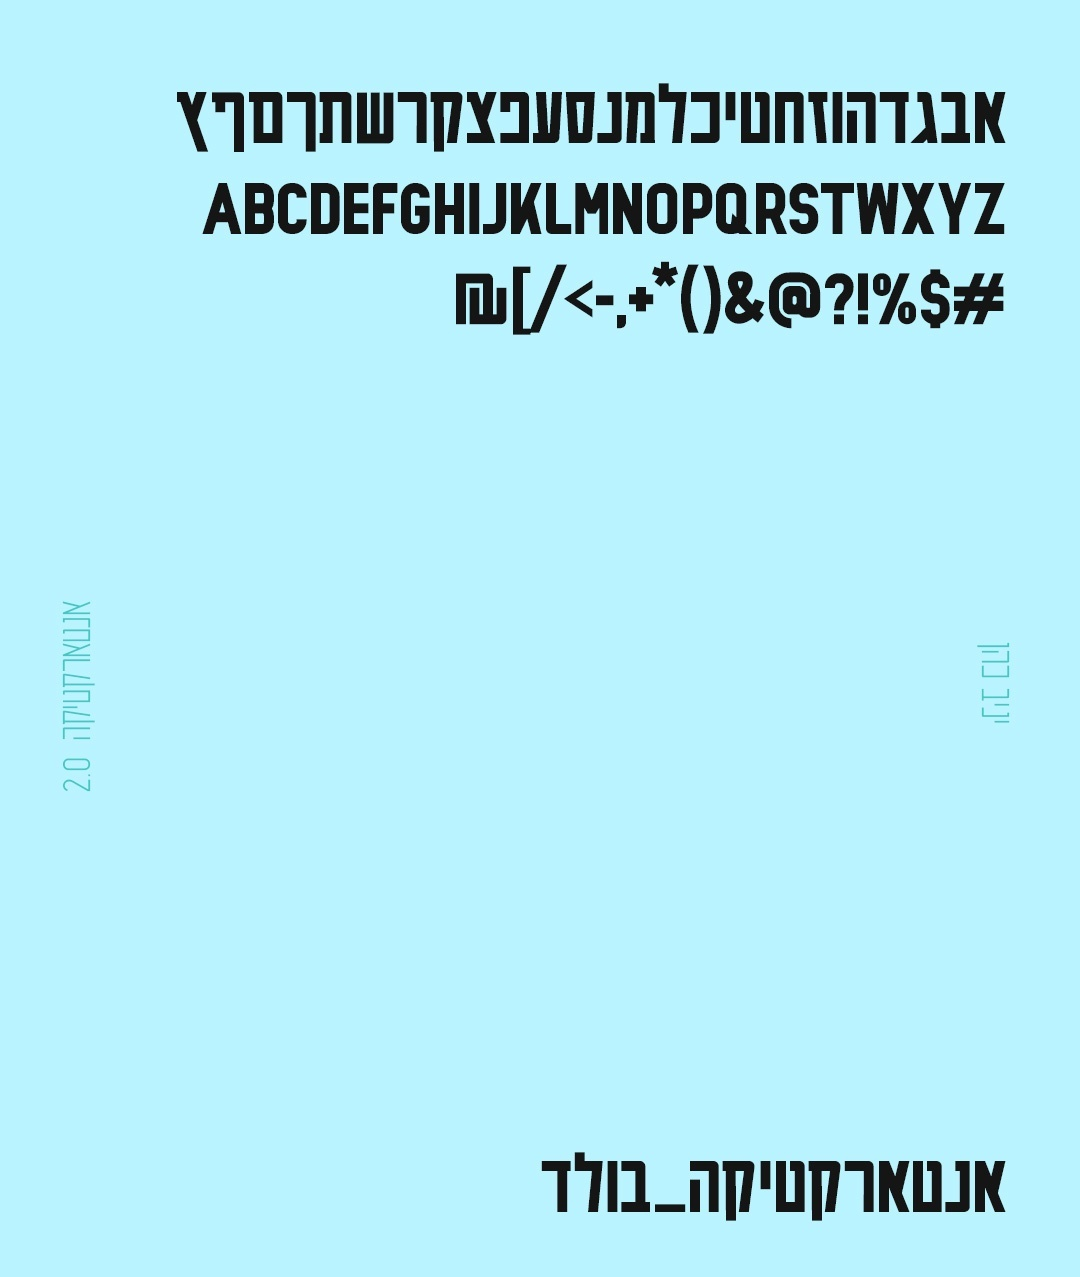 AntarticaYC Hebrew and uppercase latin Font Family - Commercial Use